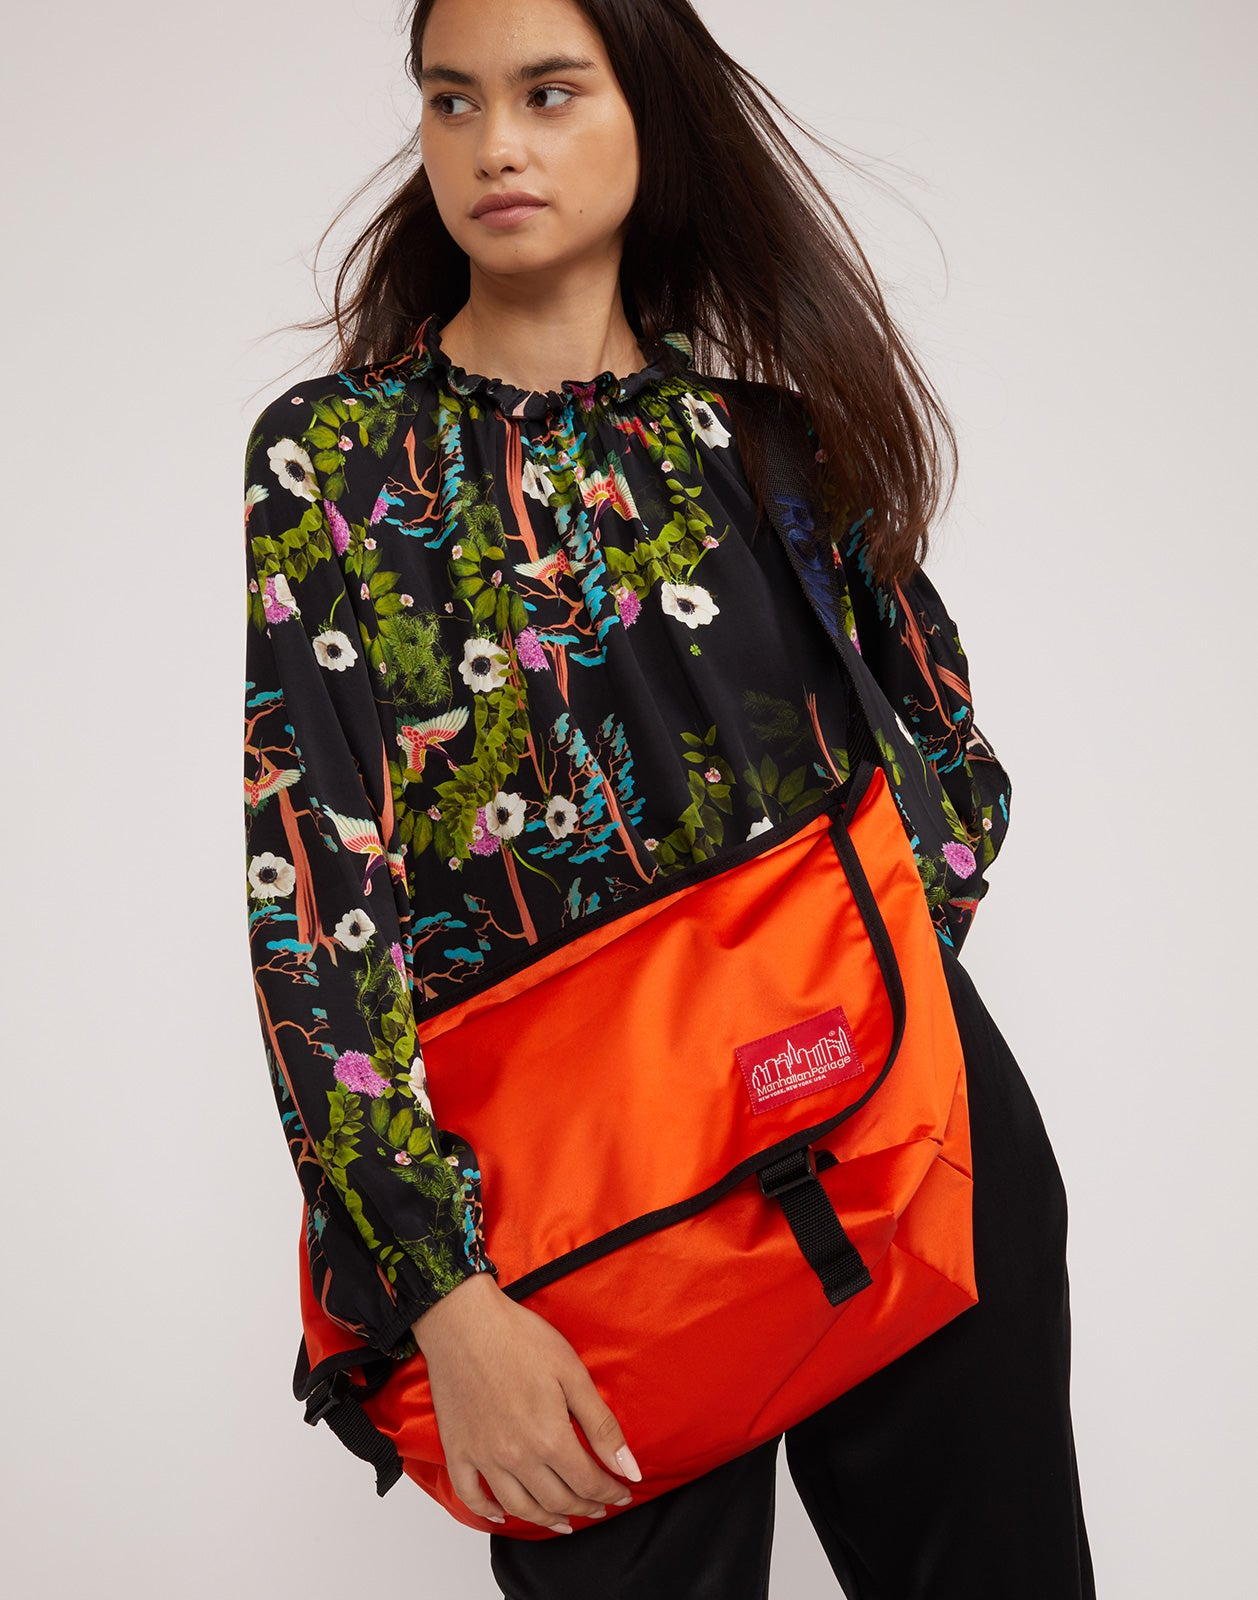 ROWLEY x Manhattan Portage messenger bag in bold orange worn crossbody over the Windsor dark floral blouse.